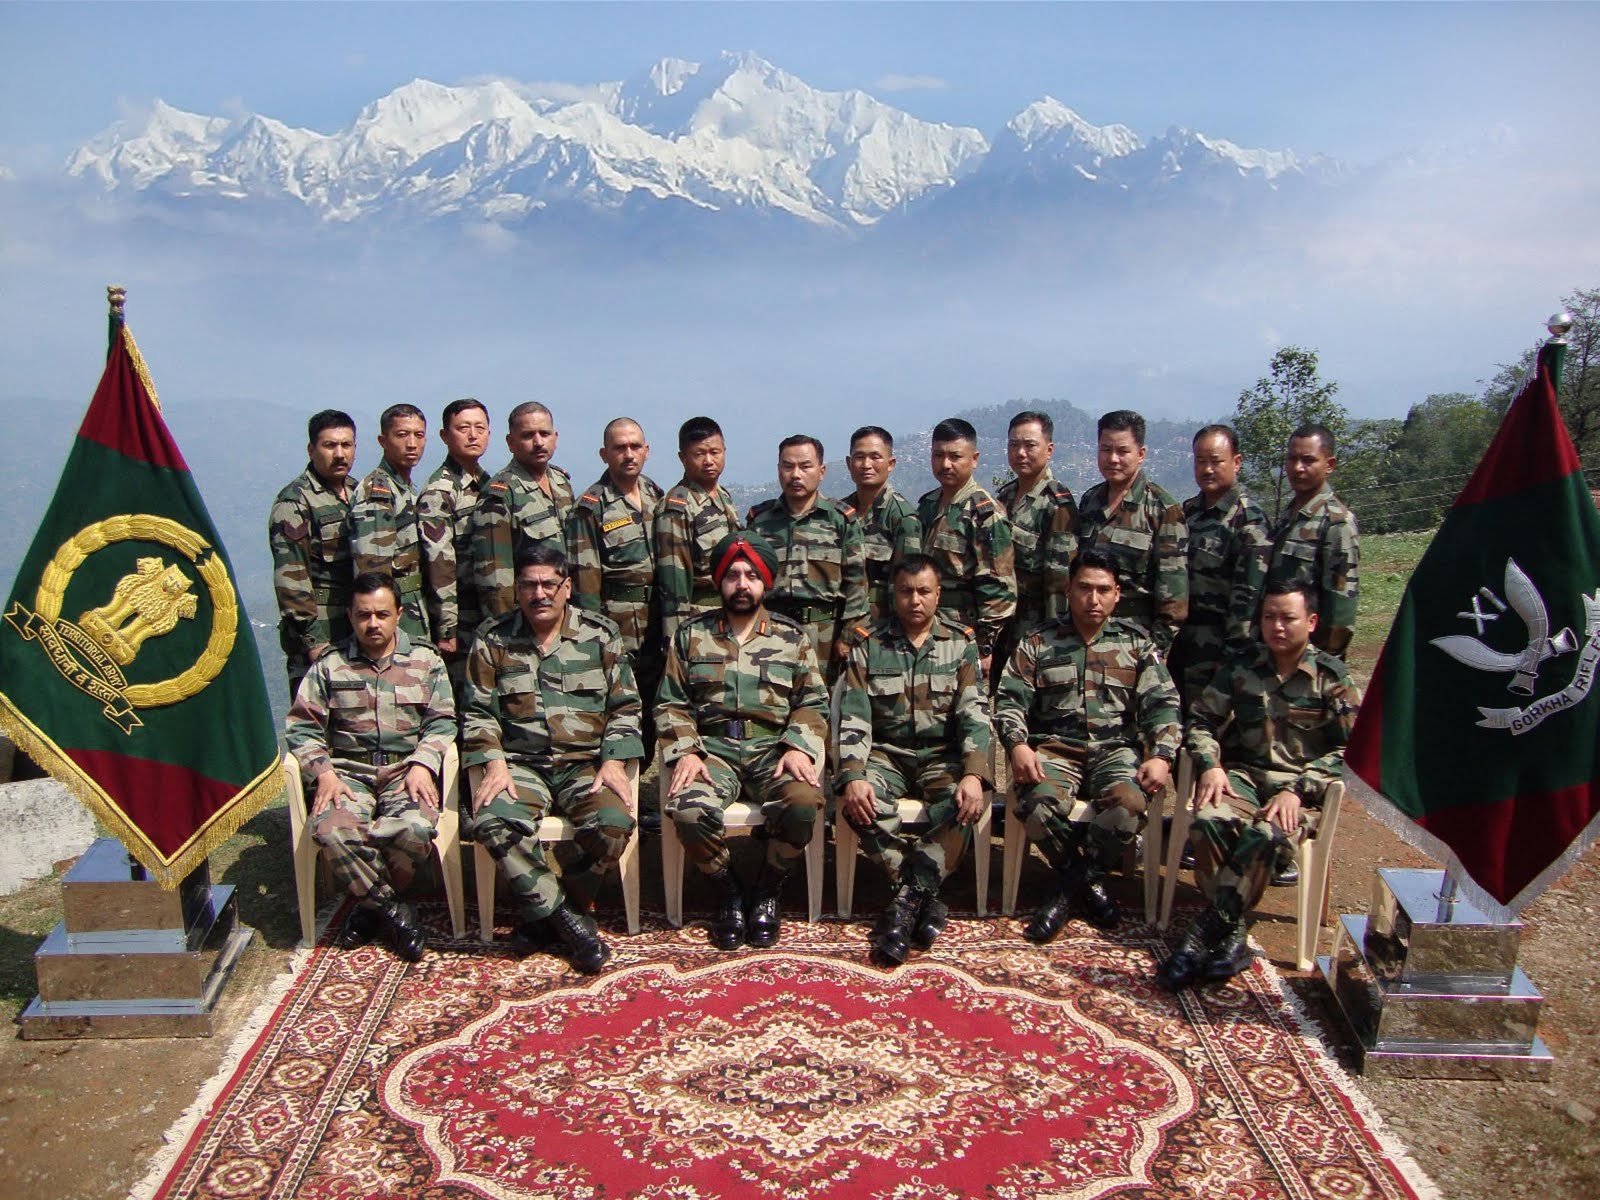 Gurkhas from Indian Army 'Gurkha Rifles' Division